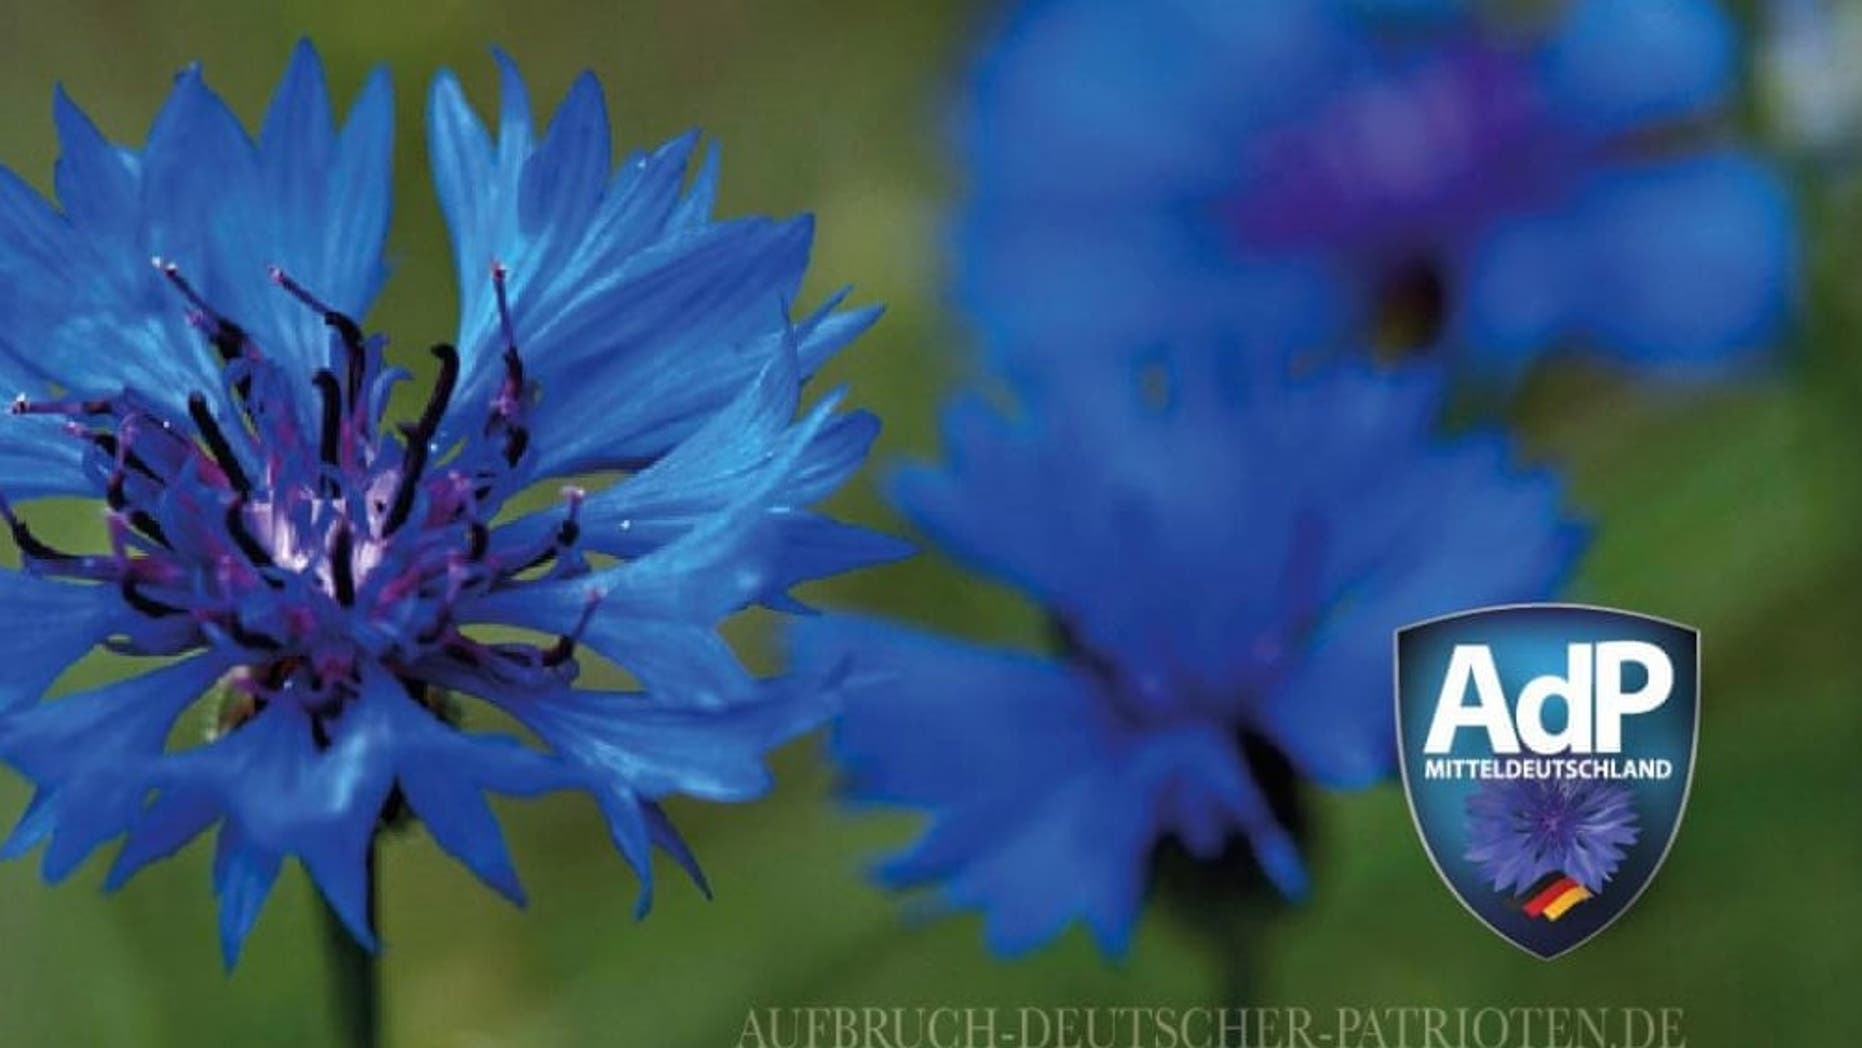 """The logo of the party shows a blue corn flower, which was associated in neighboring Austria with the anti-Semitic Schoenerer movement and was used by the sympathizers of the National Socialists as a secret symbol until the country was annexed in 1<div class=""""e3lan e3lan-in-post1""""><script async src=""""//pagead2.googlesyndication.com/pagead/js/adsbygoogle.js""""></script> <!-- Text_Display_Responsive --> <ins class=""""adsbygoogle""""      style=""""display:block""""      data-ad-client=""""ca-pub-6192903739091894""""      data-ad-slot=""""3136787391""""      data-ad-format=""""auto""""      data-full-width-responsive=""""true""""></ins> <script> (adsbygoogle = window.adsbygoogle 